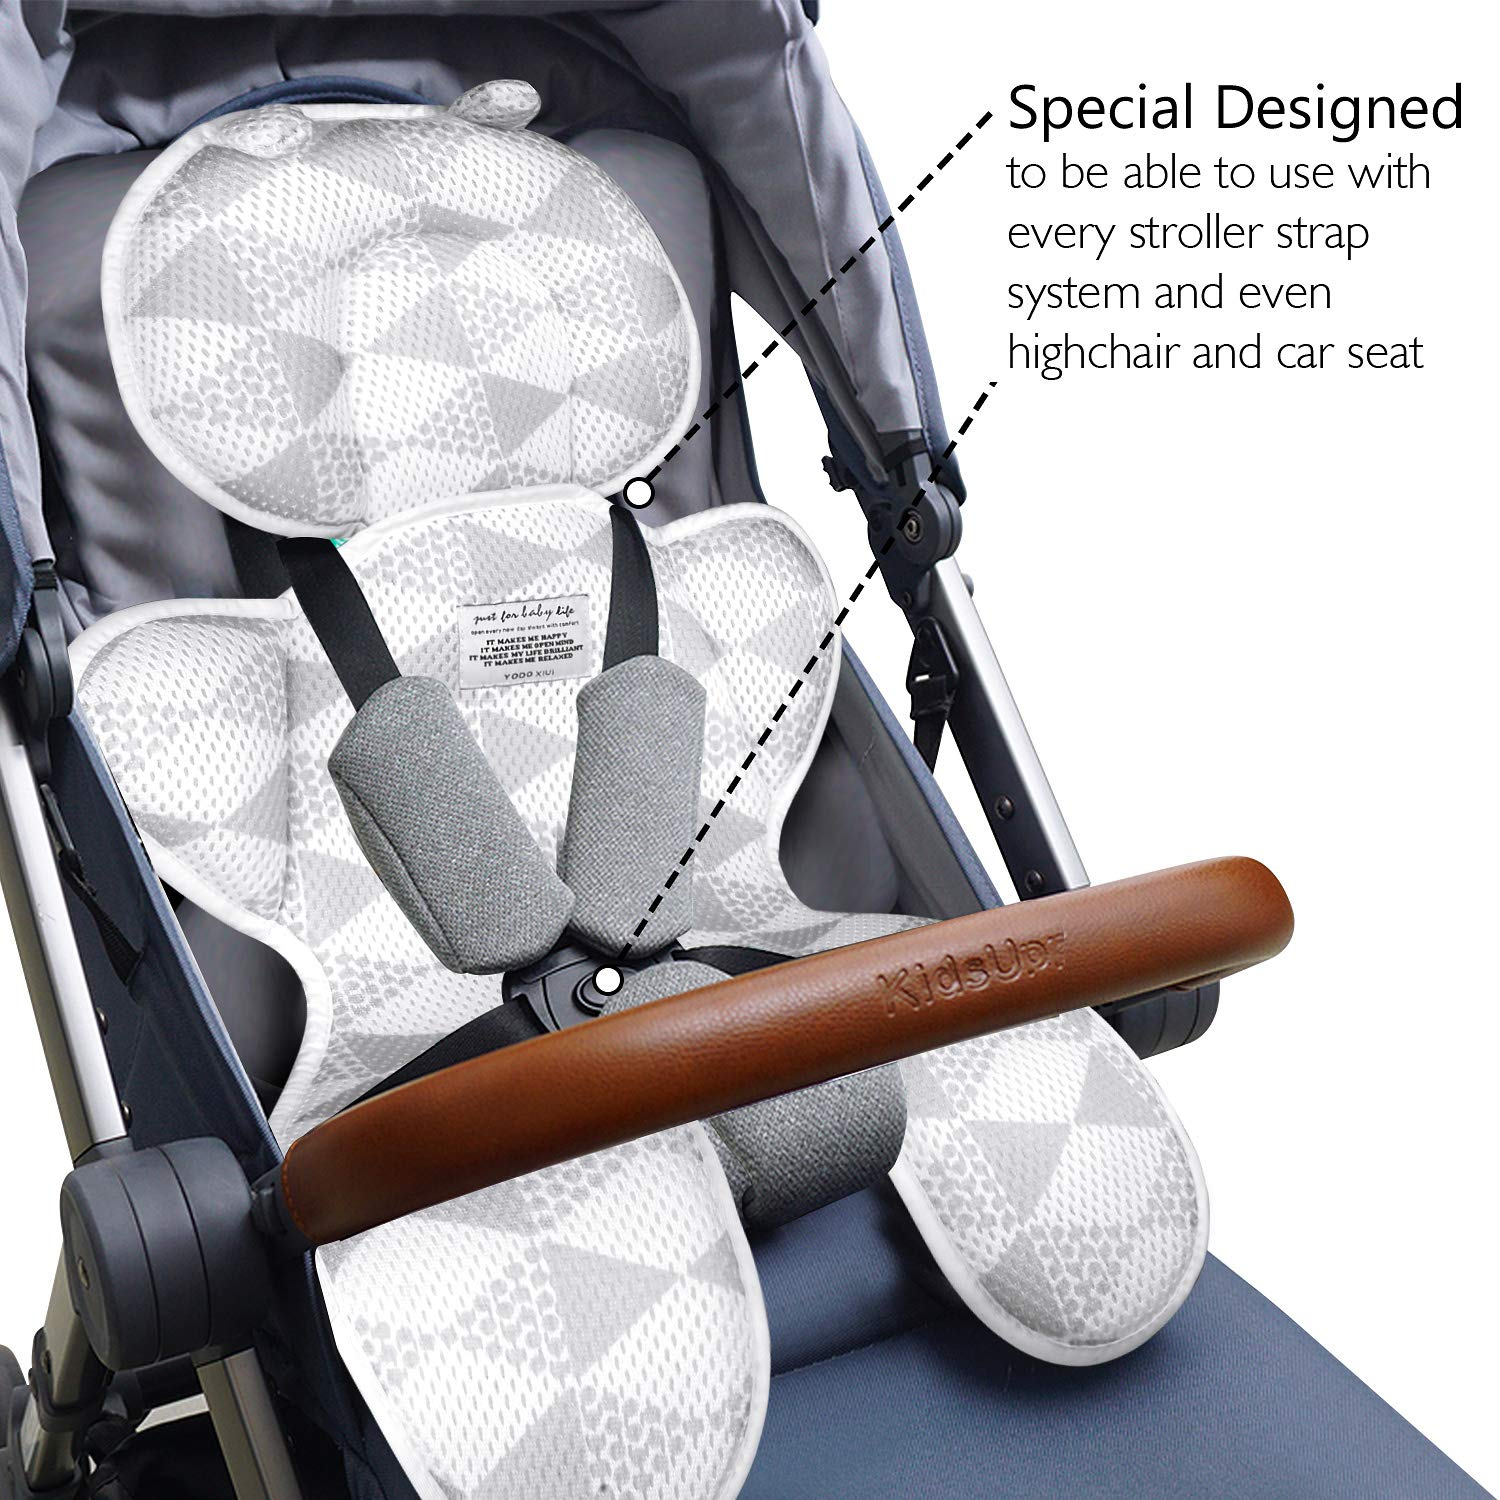 Luchild Baby Head Support Pillow Breathable 3D Mesh Cool Seat Mat Cushion Liner for Stroller Car Seat High Chair Pushchair - Gray by Luchild (Image #6)